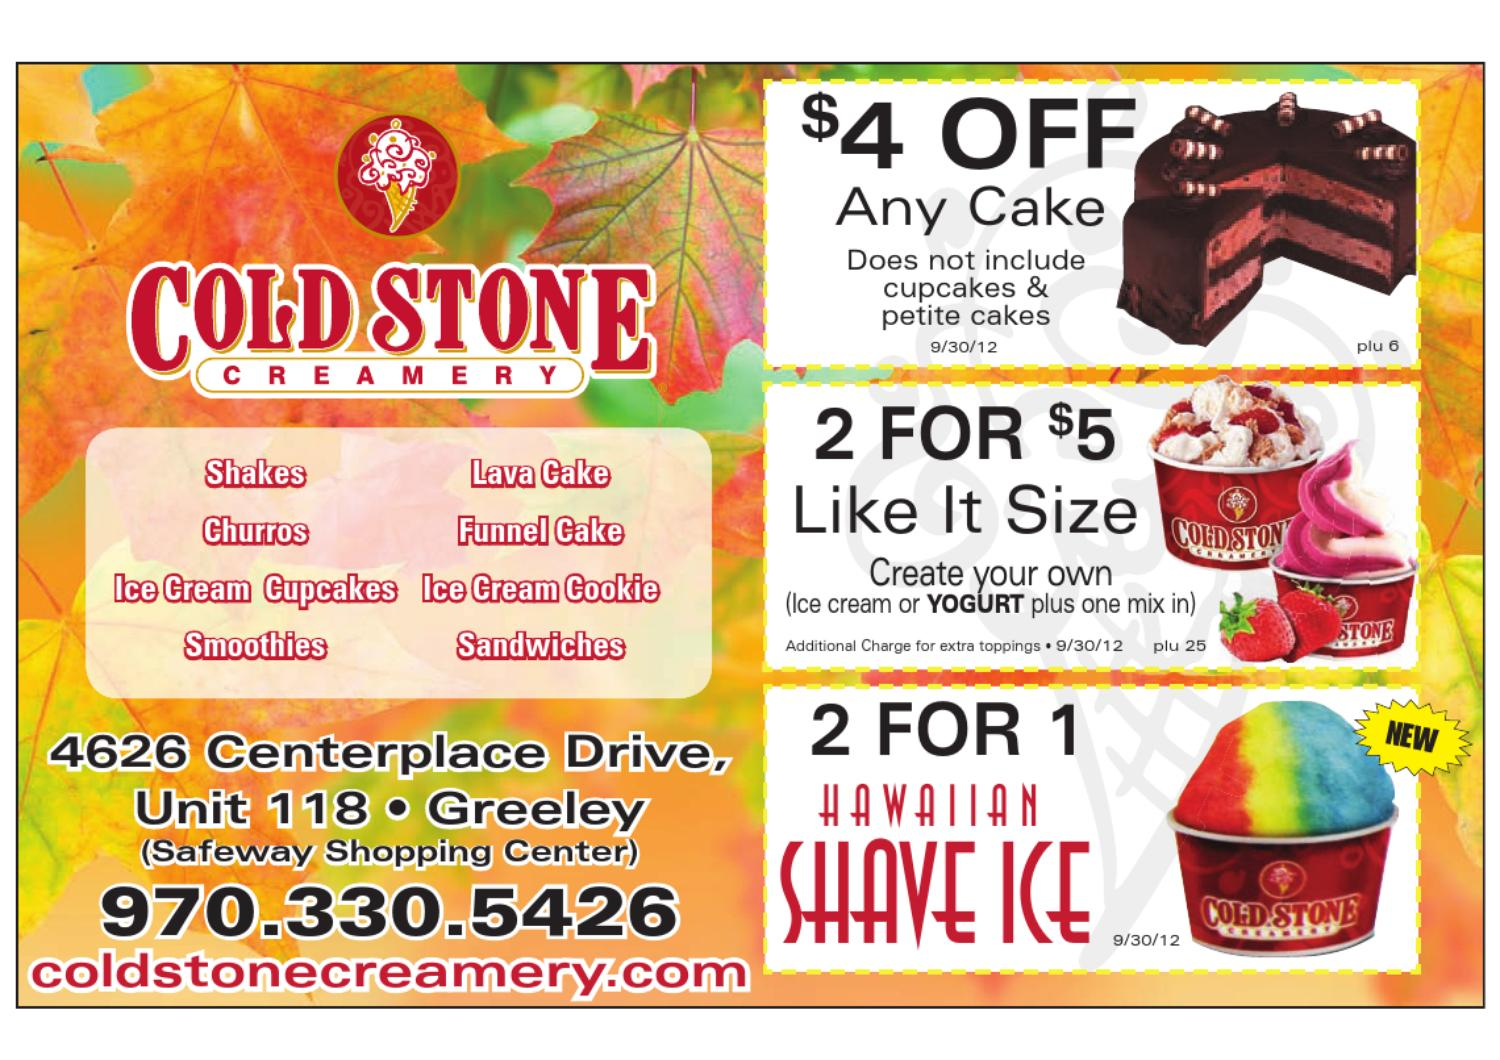 September Coupon Book 2012 by The Greeley Publishing Company - issuu